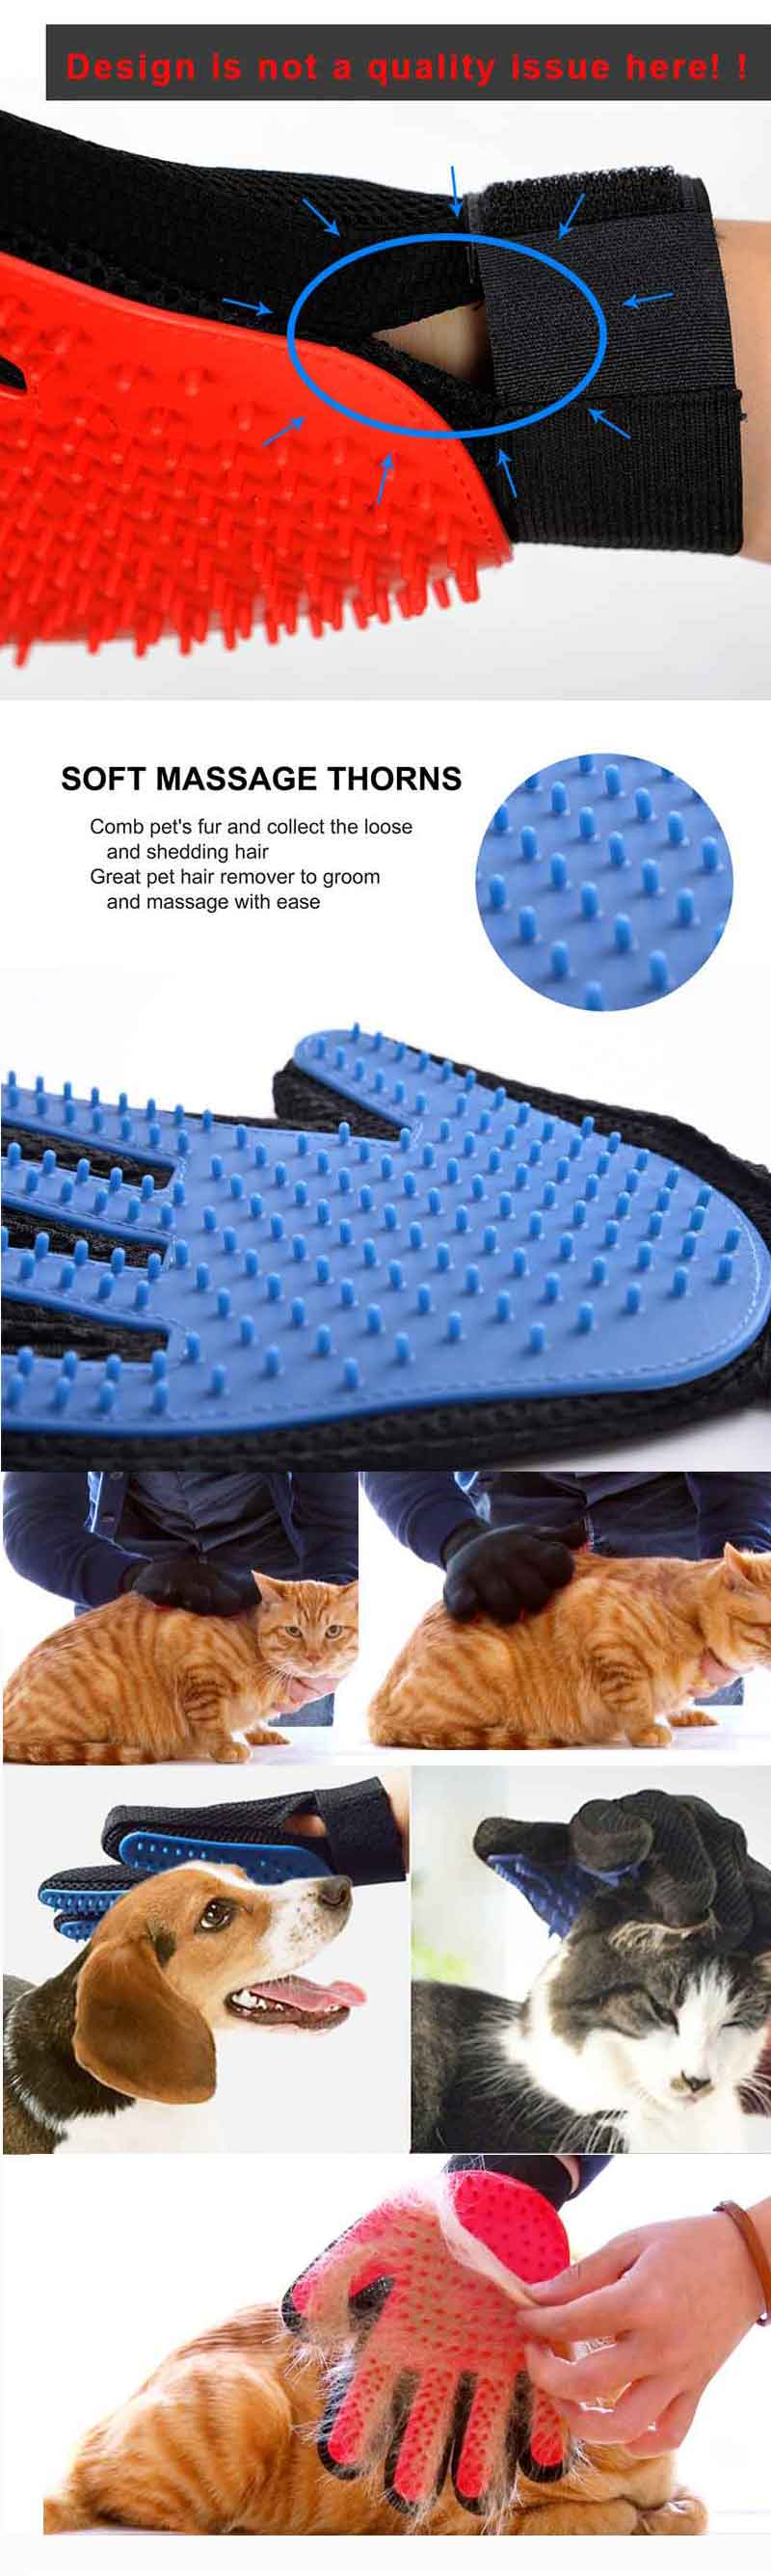 HTB1z39bE1OSBuNjy0Fdq6zDnVXad Cat Self Grooming Hair Accessorie With Catnip Angle Face Tickling Dog Hair Removal Massage Brush Comb And Pet Dog Cat Grooming Glove